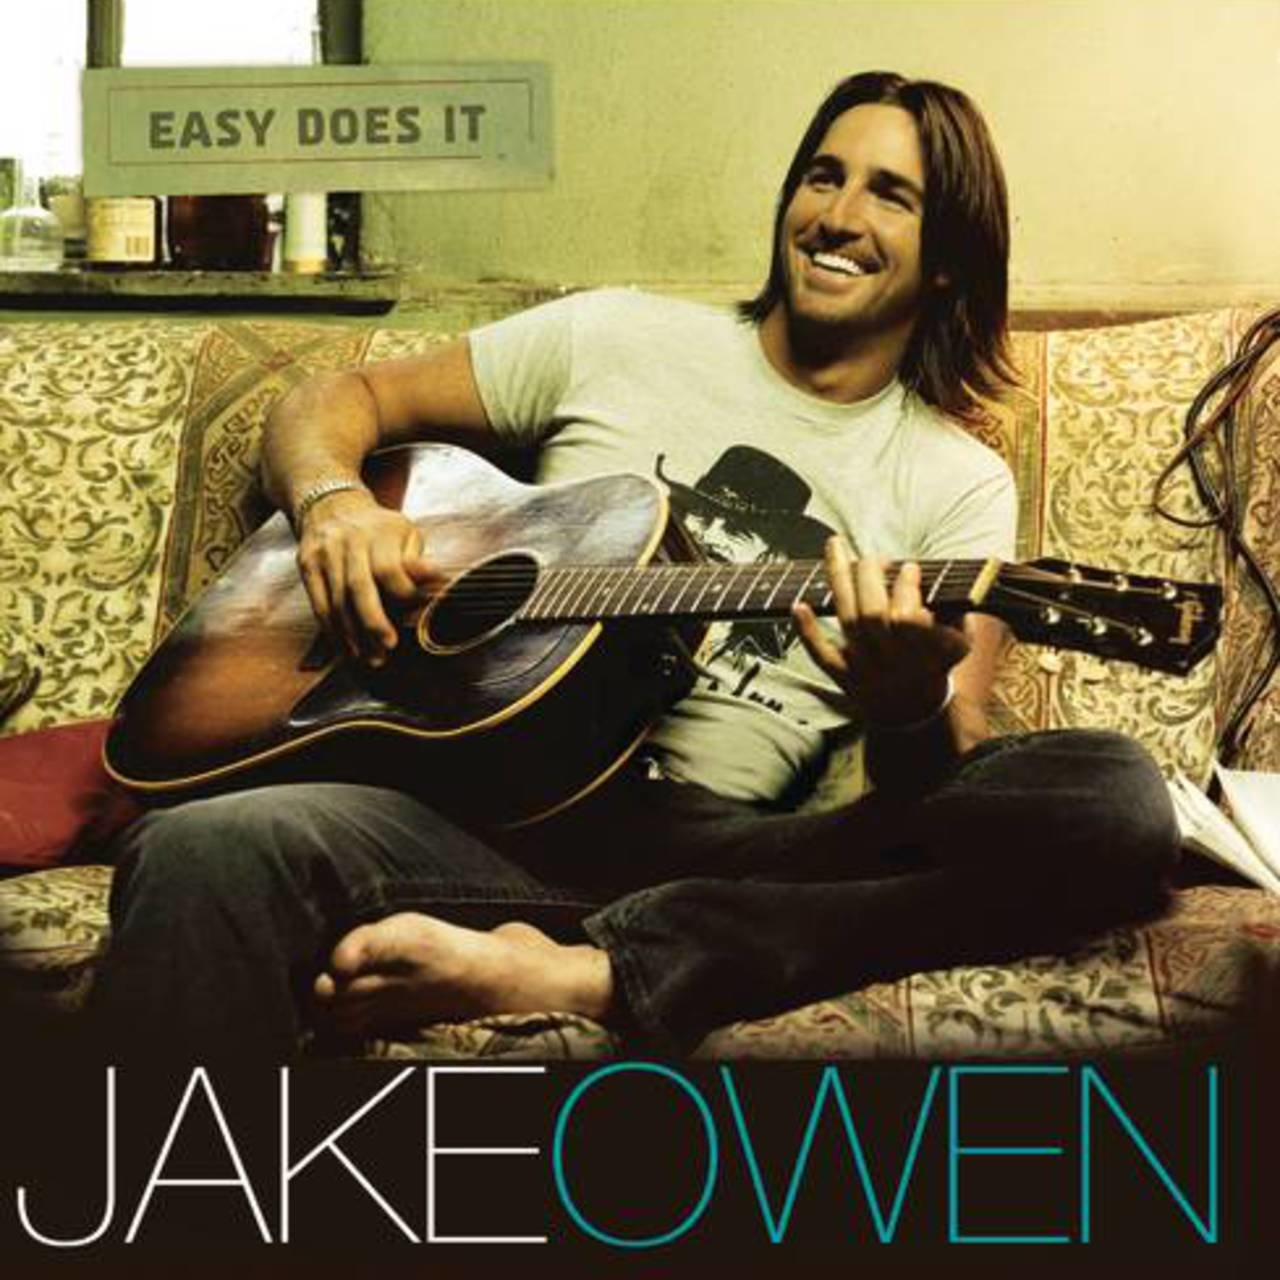 Jake Owen List Of Songs Classy easy does it / jake owen tidal